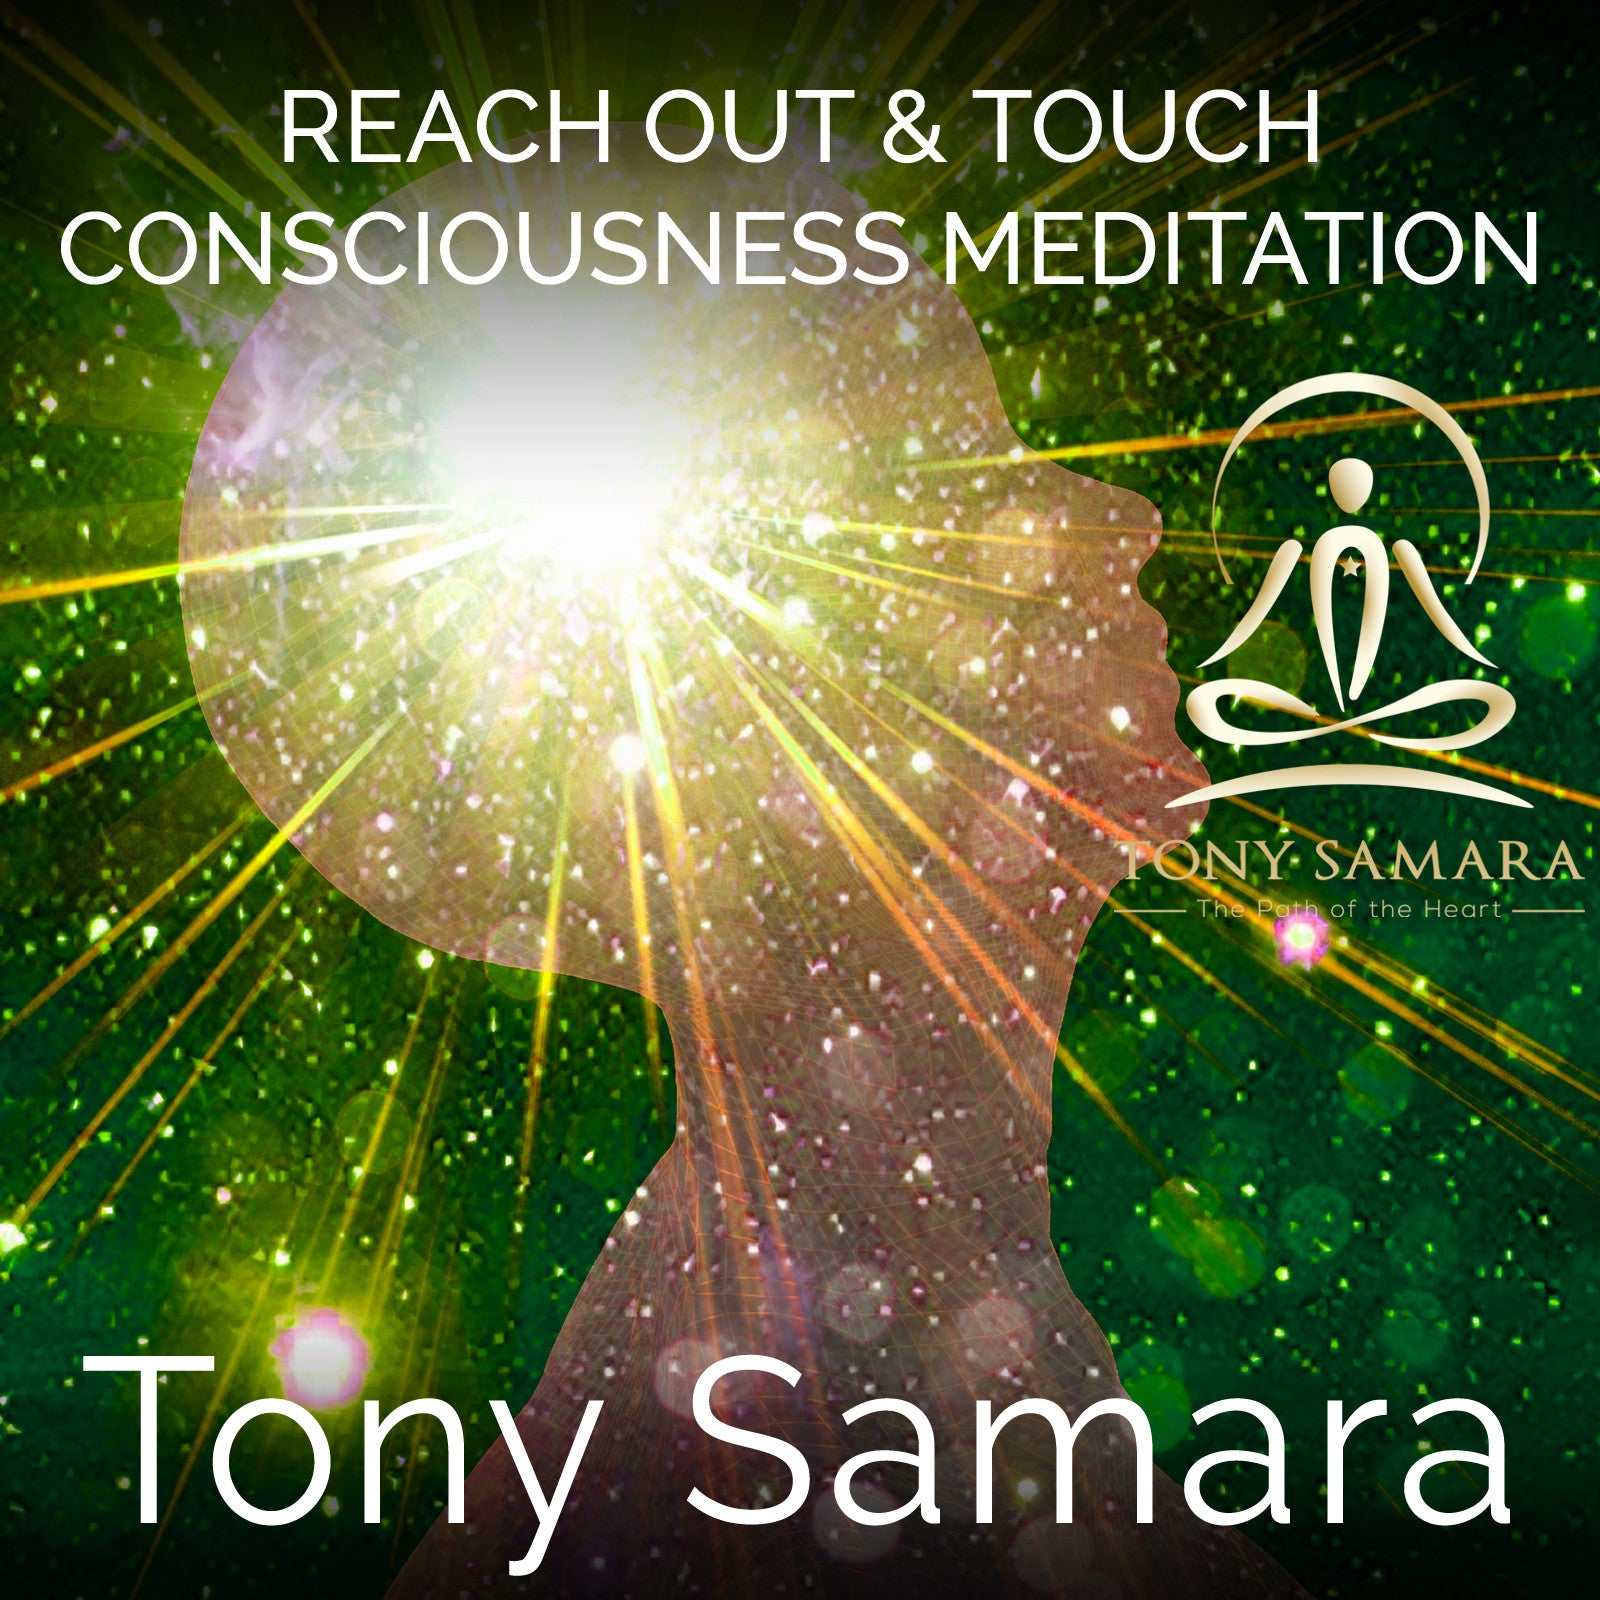 Reach Out & Touch Consciousness Meditation (MP3 Audio Download) - Tony Samara Meditation